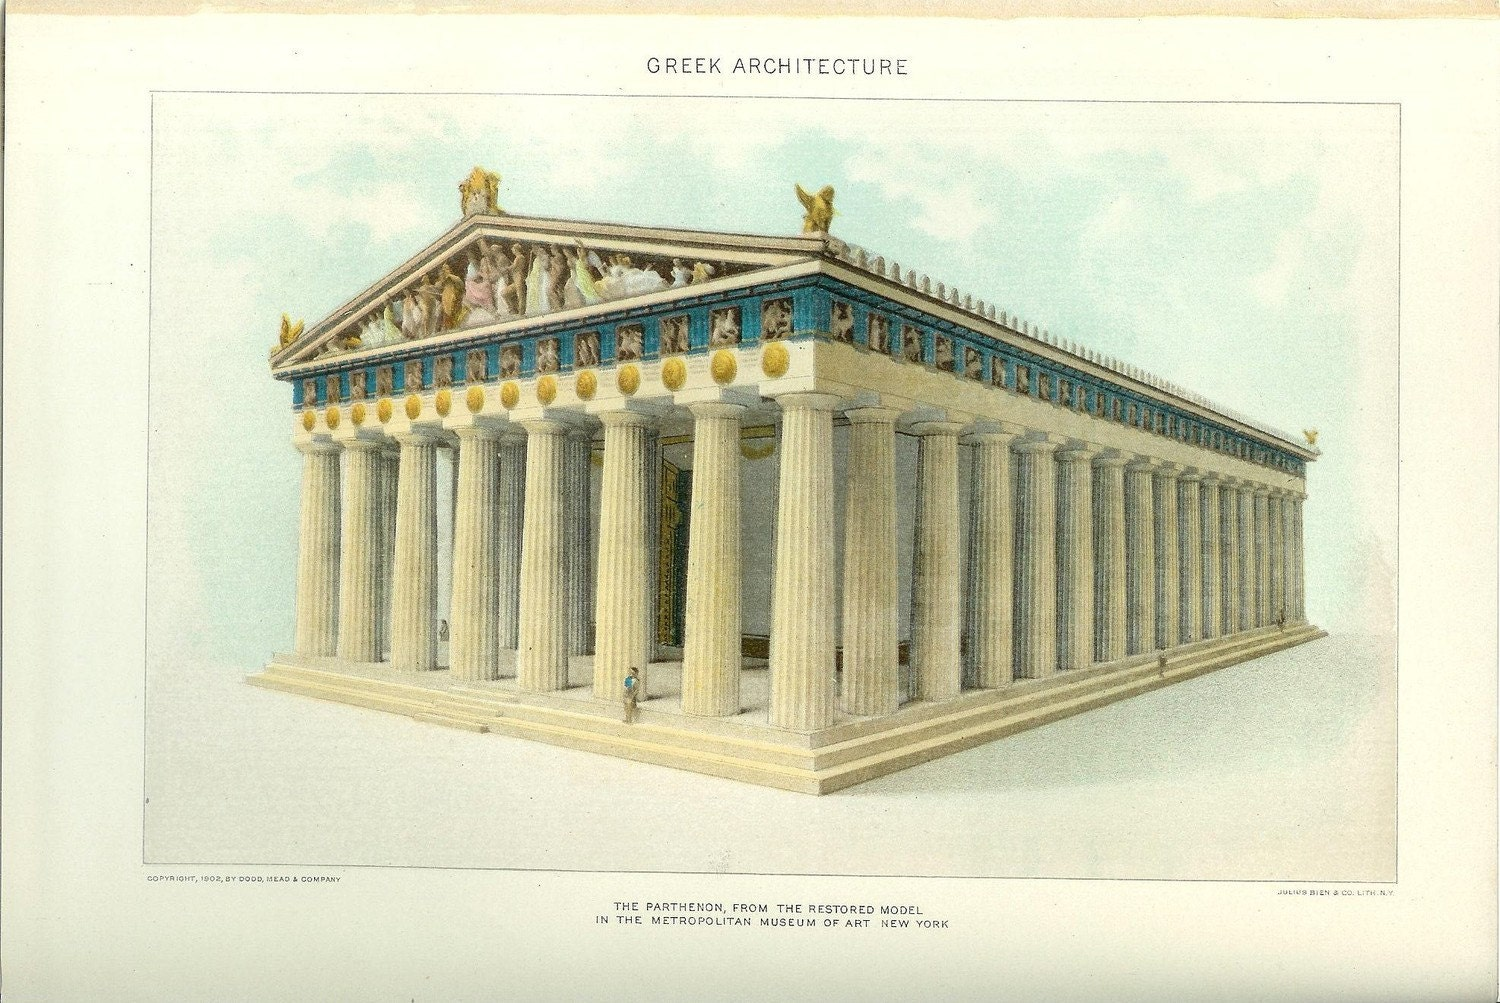 1903 greek architecture print vintage antique art by holcroft for Architecture antique